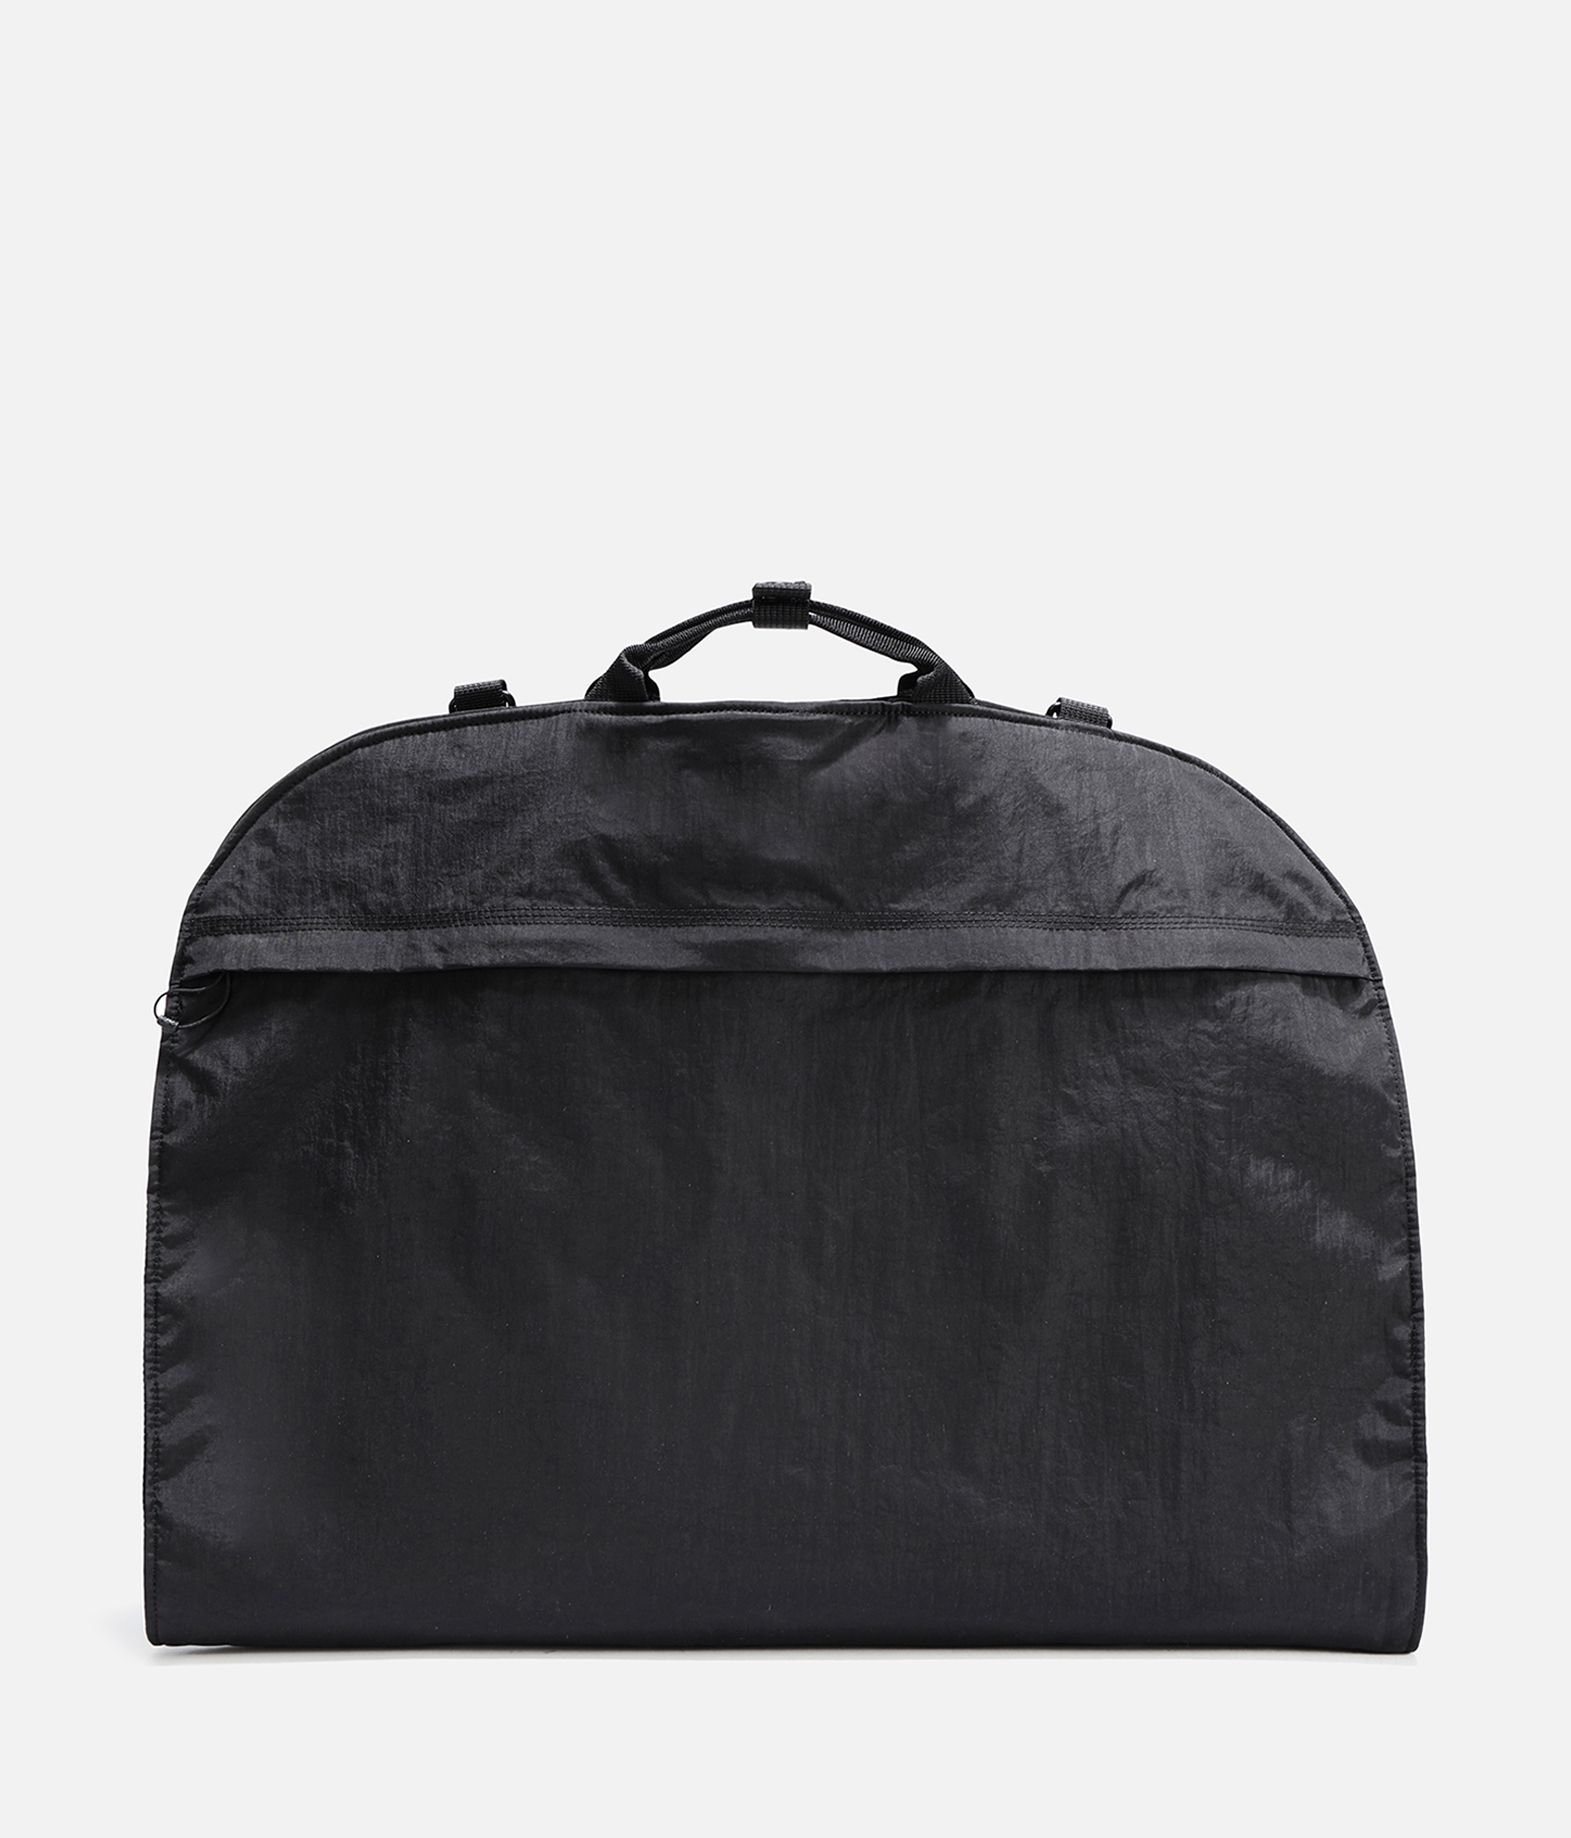 Y-3 Y-3 Suit Bag Travel bags E e